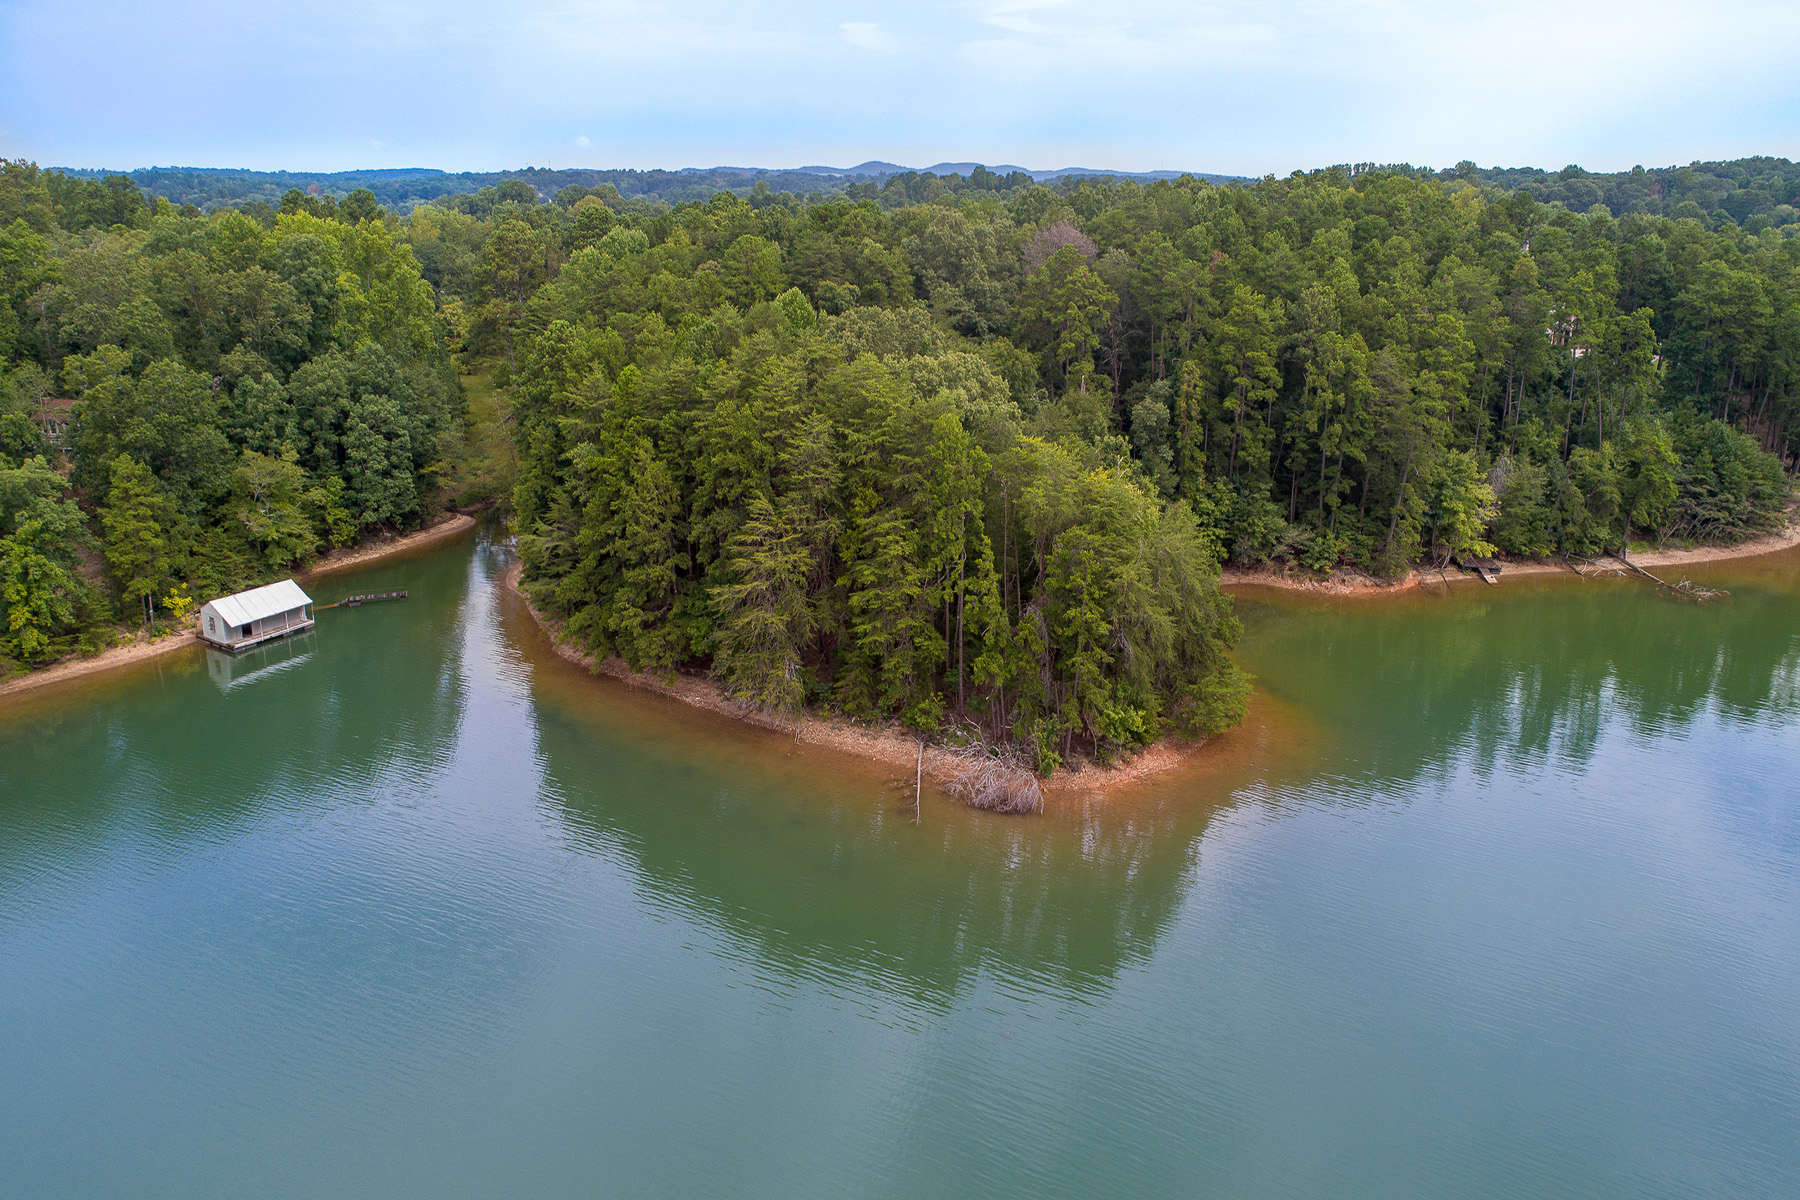 Land for Sale at Lake Lanier Acreage With Two Boat Dock Permits 7385 Heard Road Cumming, Georgia 30041 United States